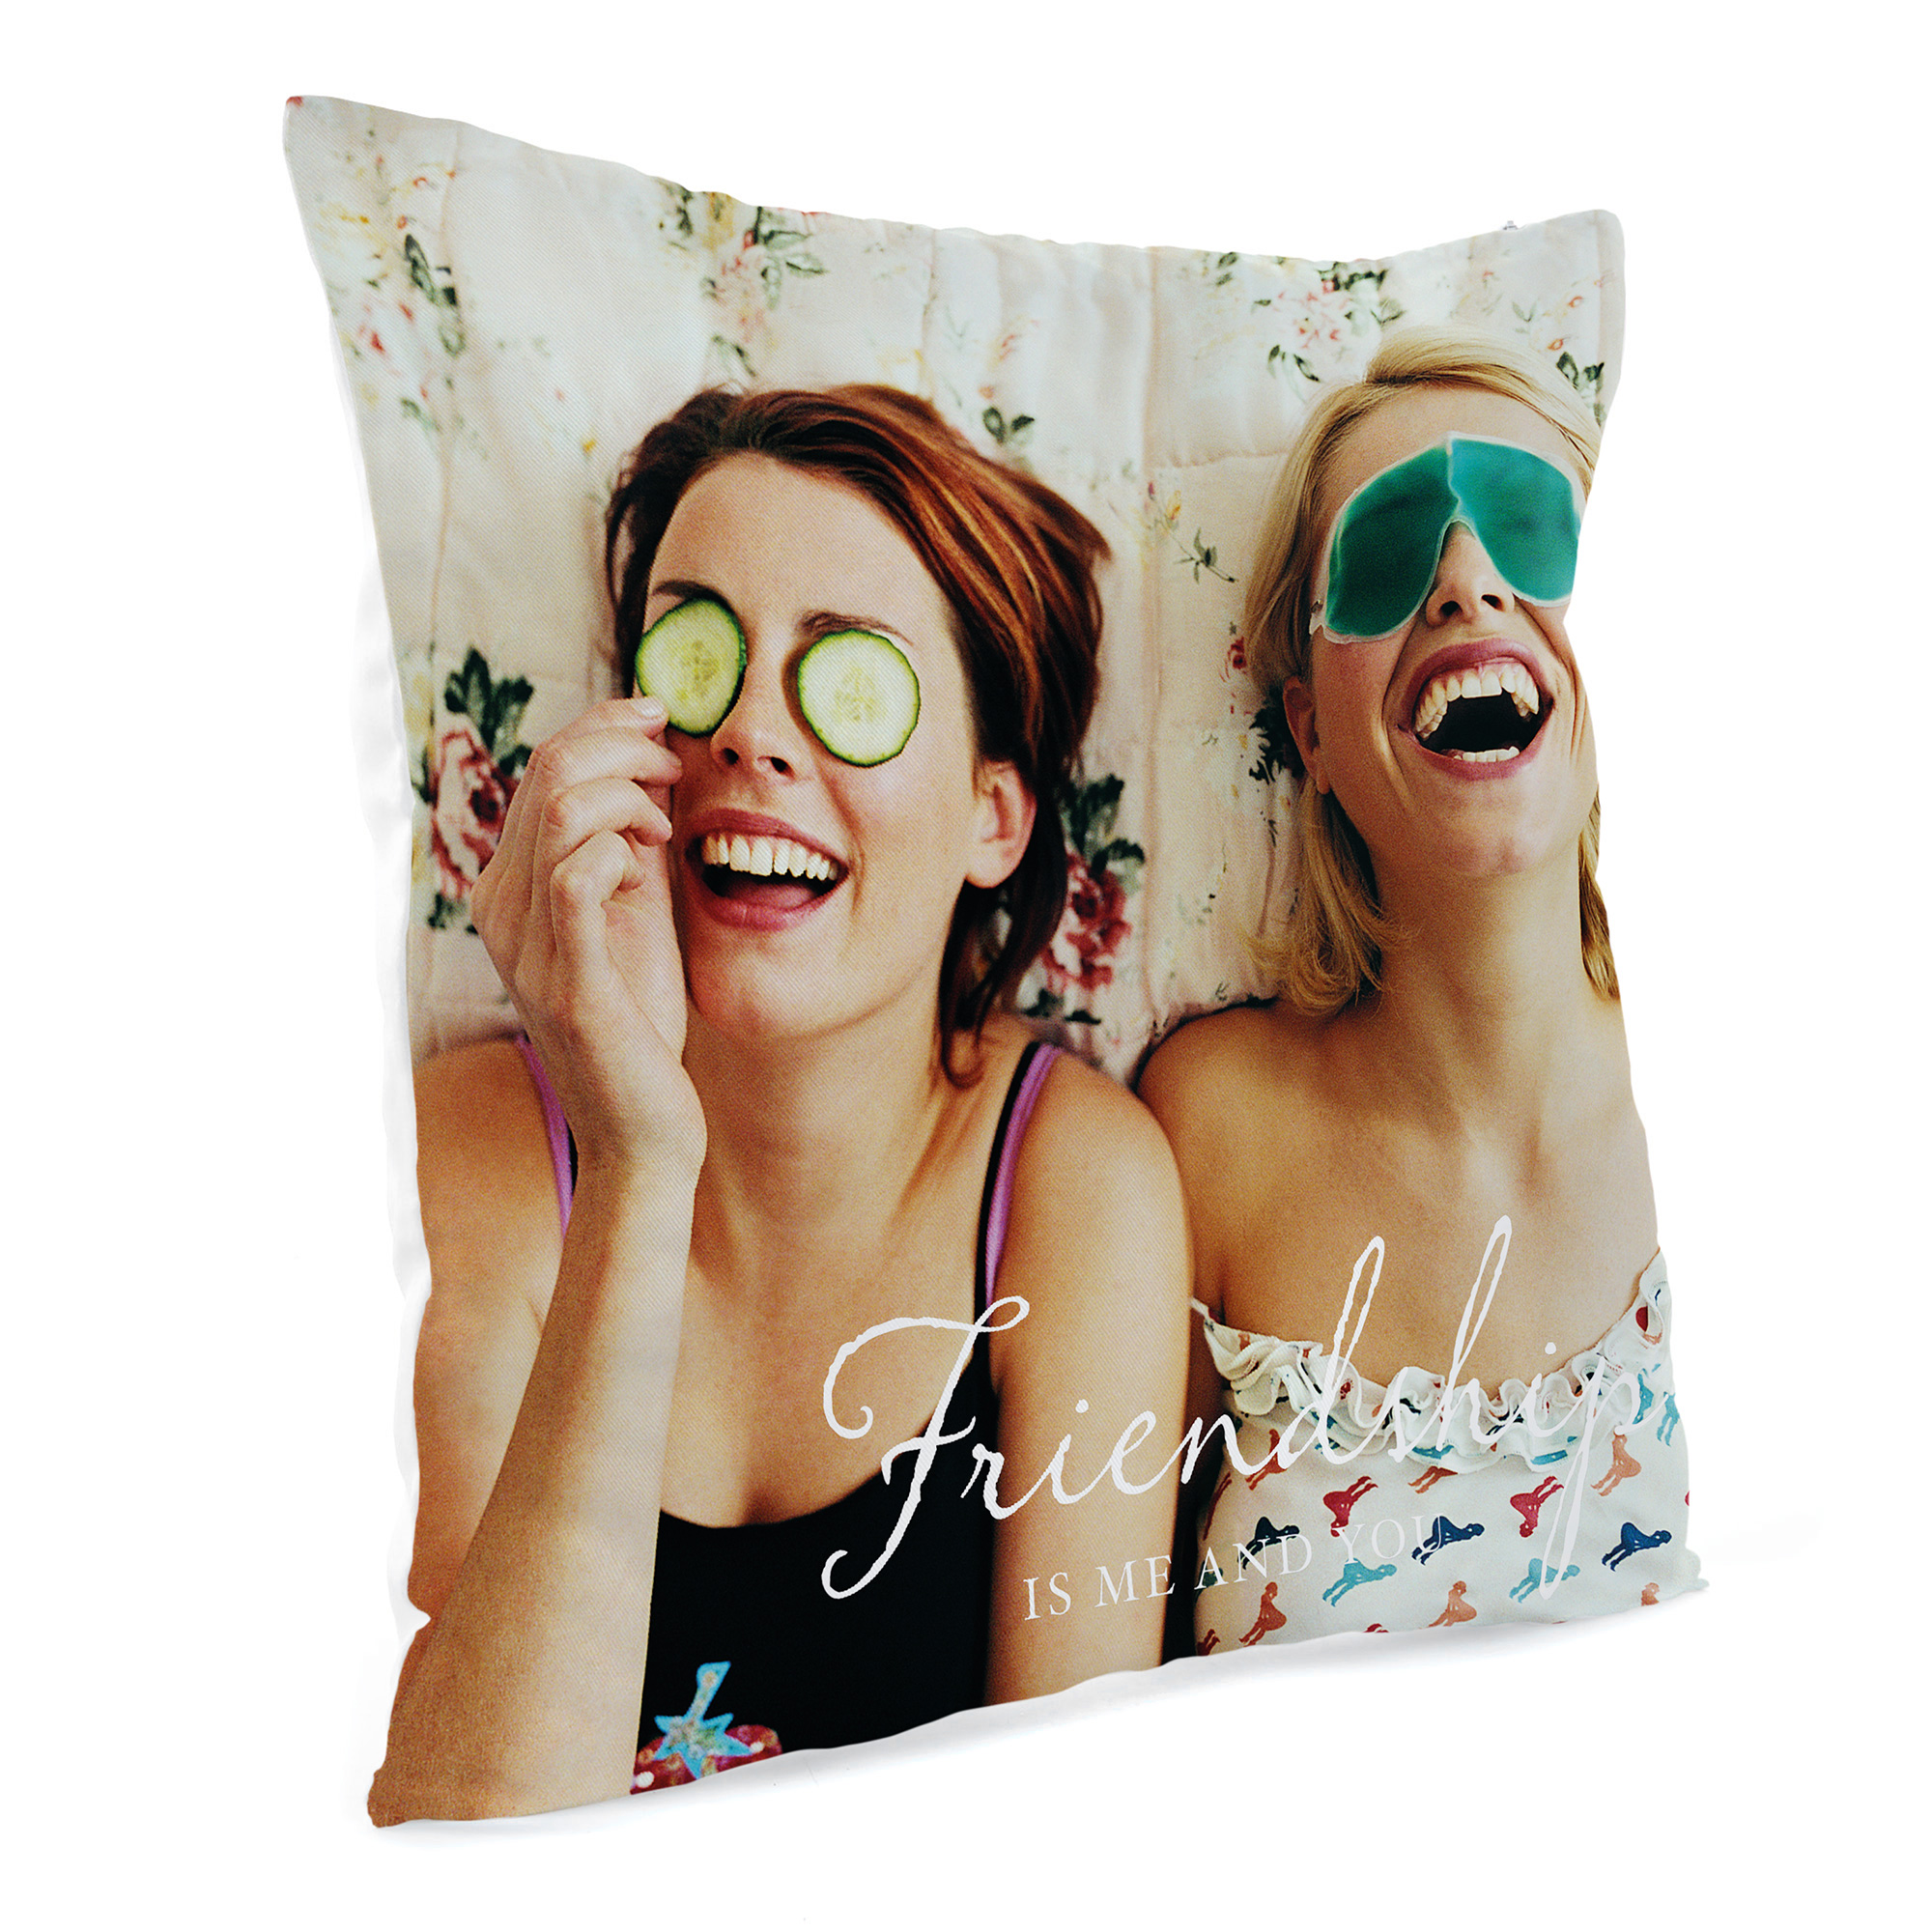 Personalised Photo Cushion - Friendship Is Me and You